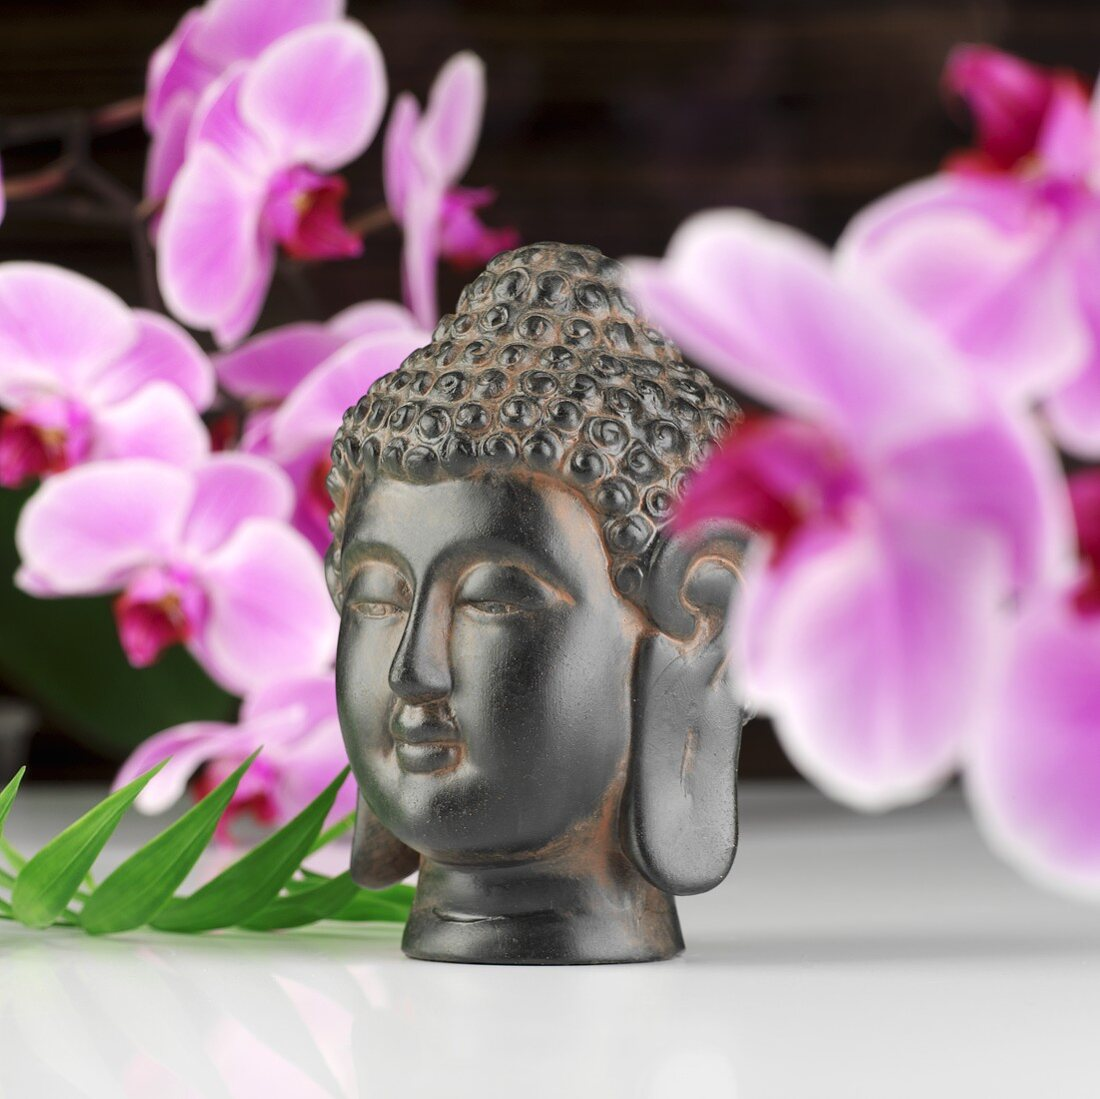 Buddha head in front of orchids